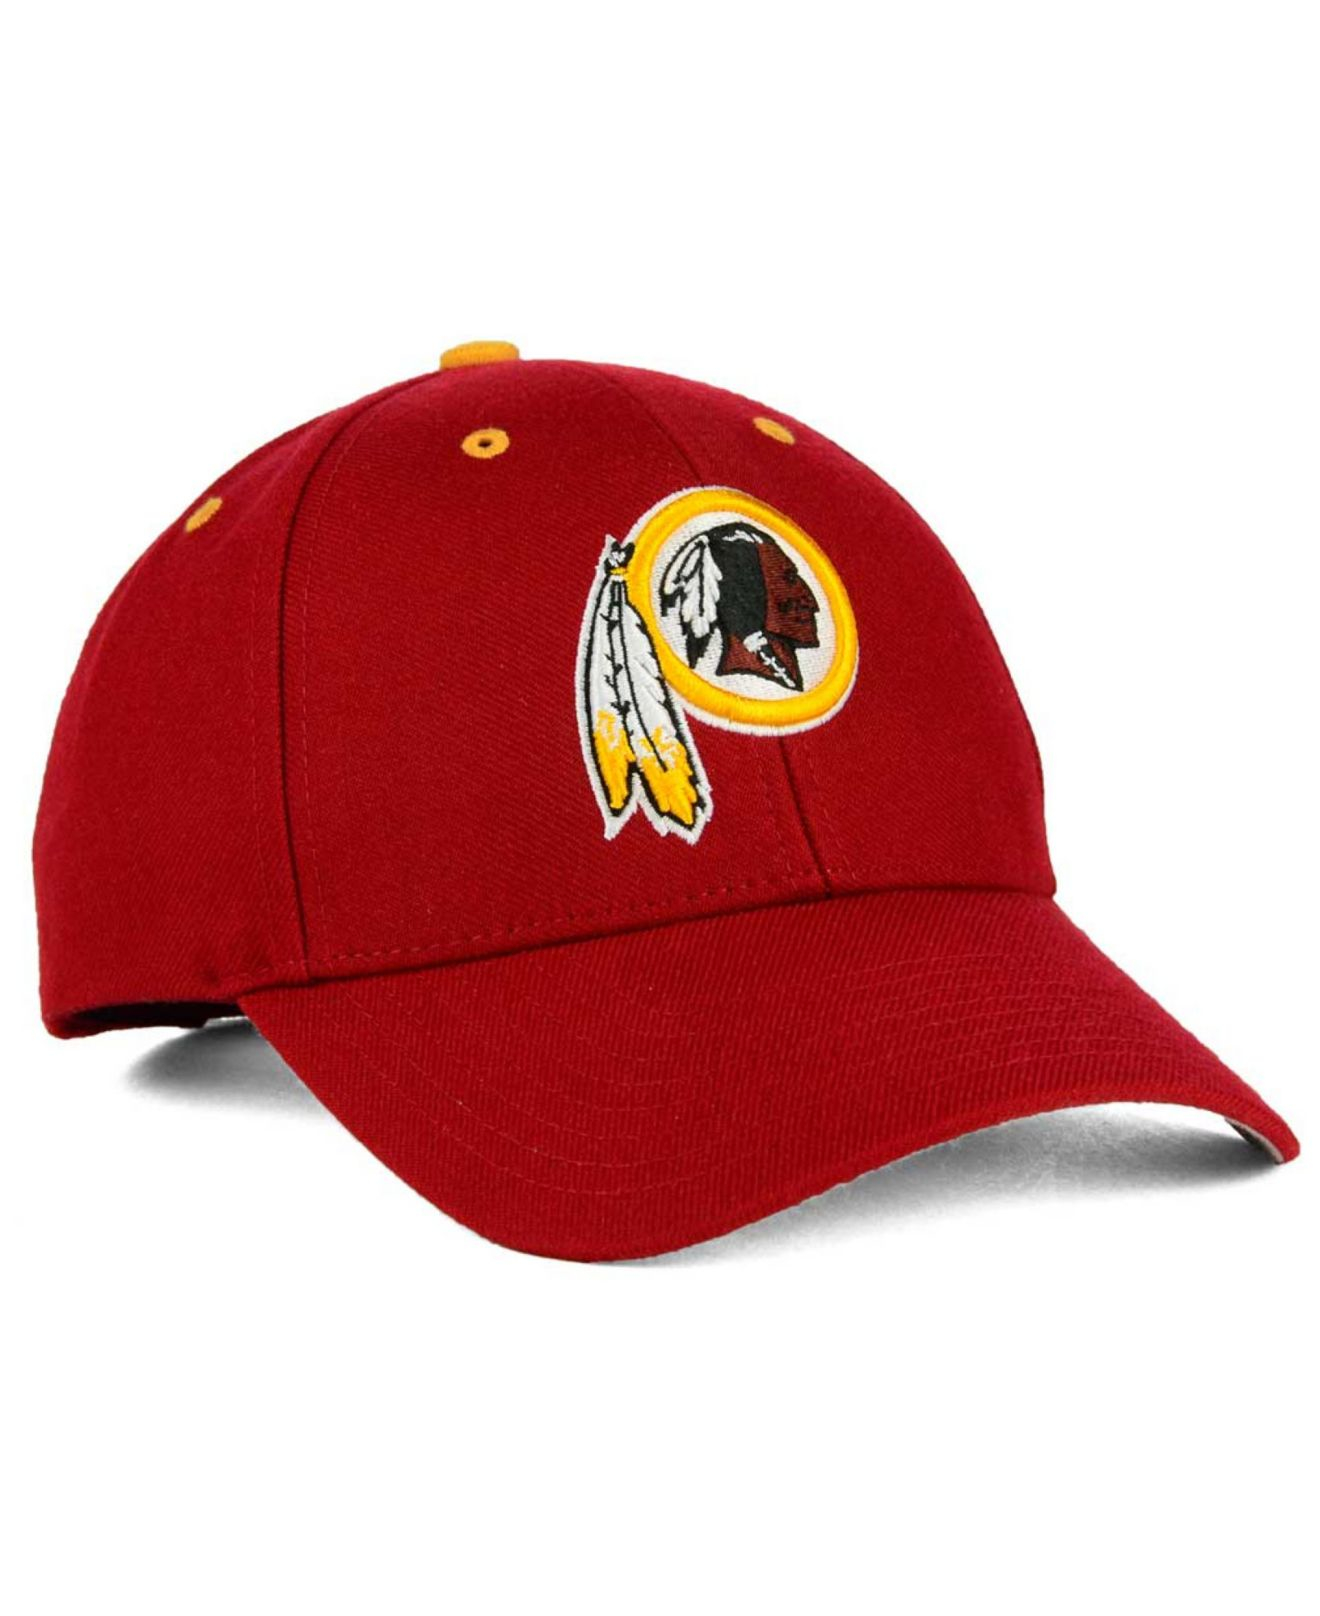 detailed pictures 16902 9c052 Lyst - 47 Brand Washington Redskins Audible Mvp Cap in Red for Men